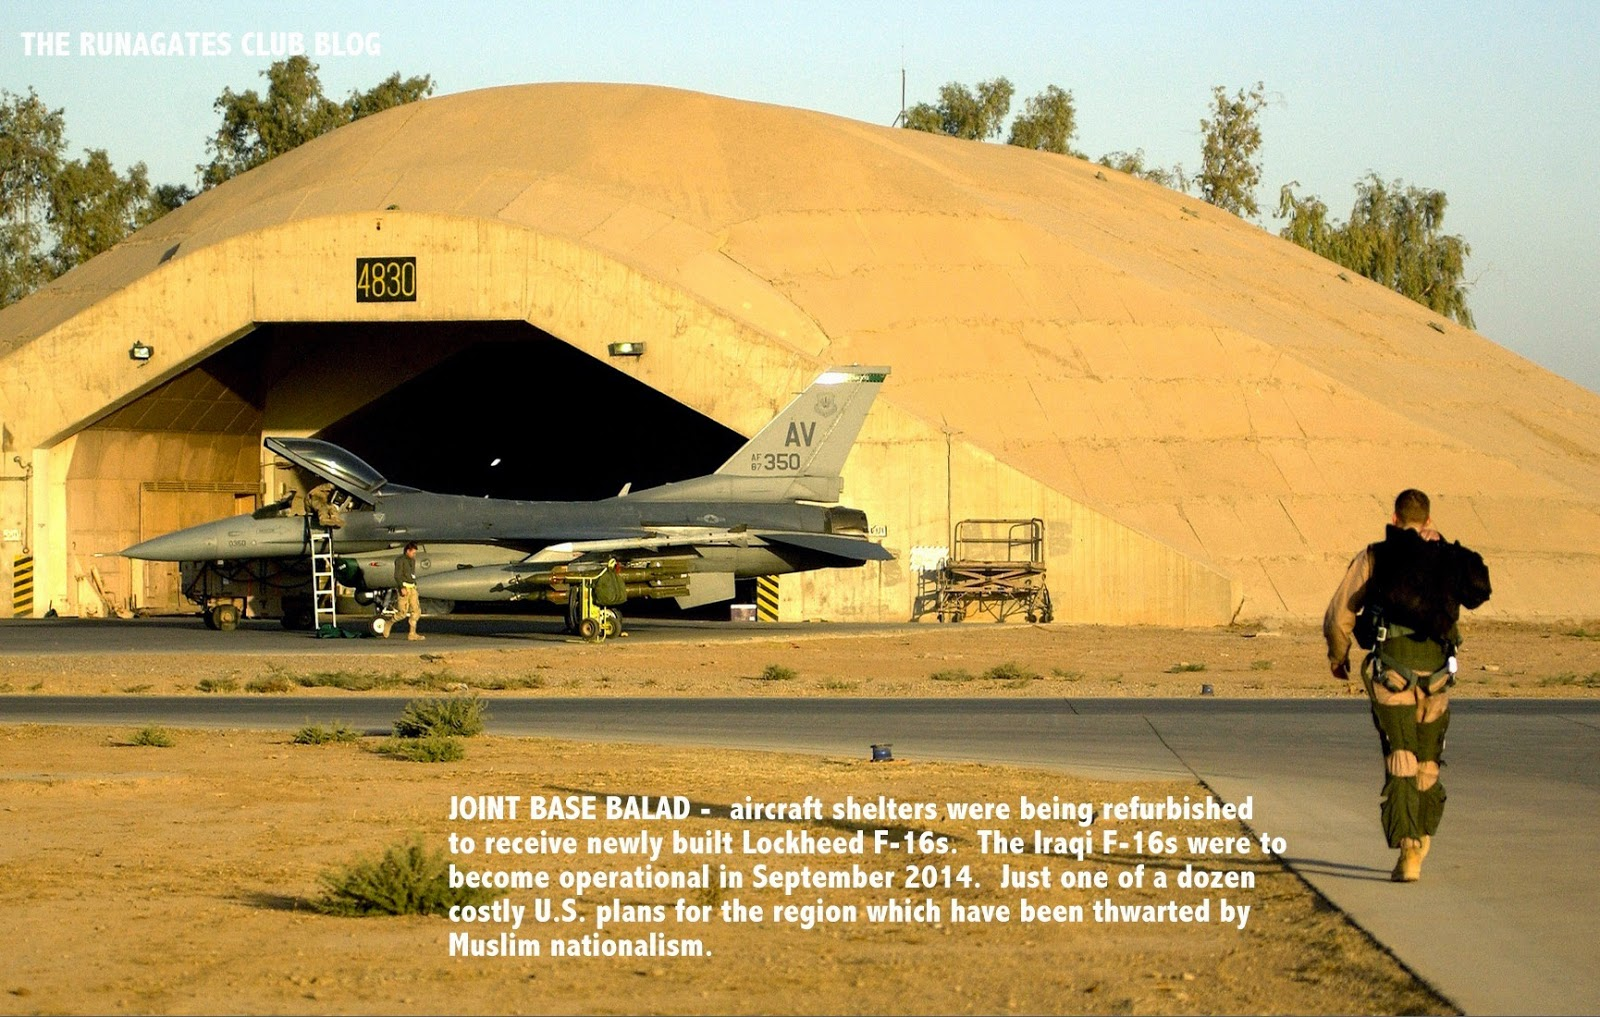 Hardened shelter for F-16 aircraft - Joint Base Balad